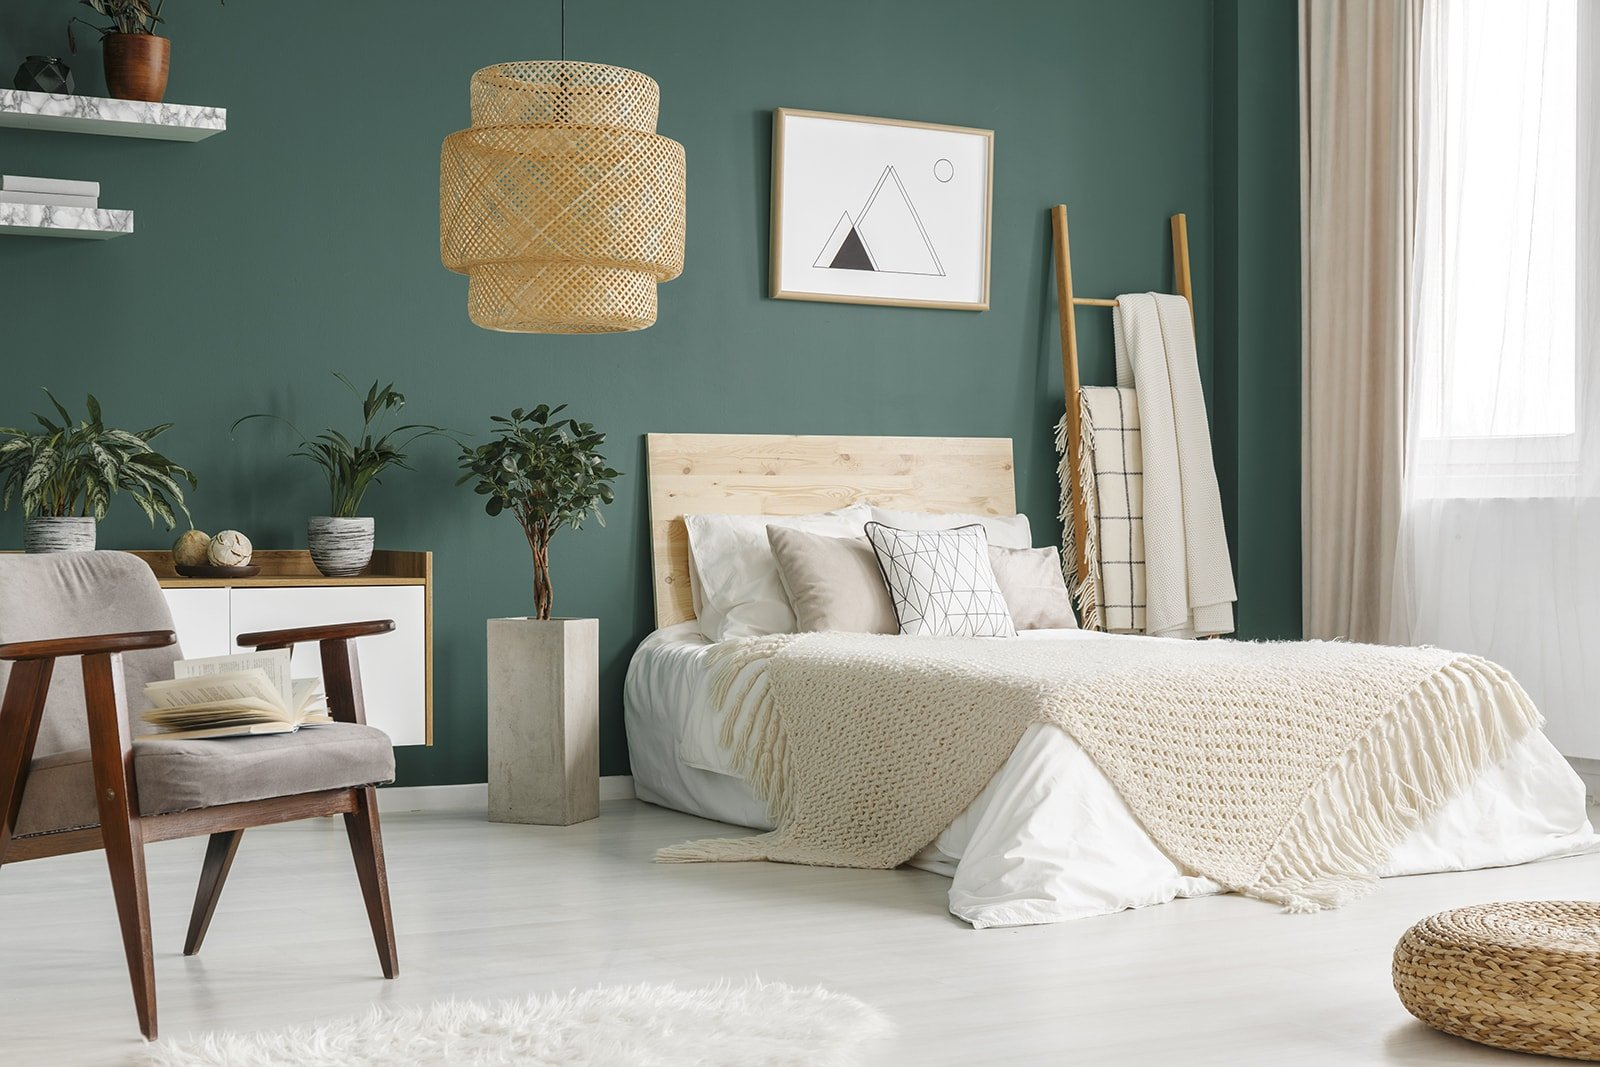 Green themed bedroom interior